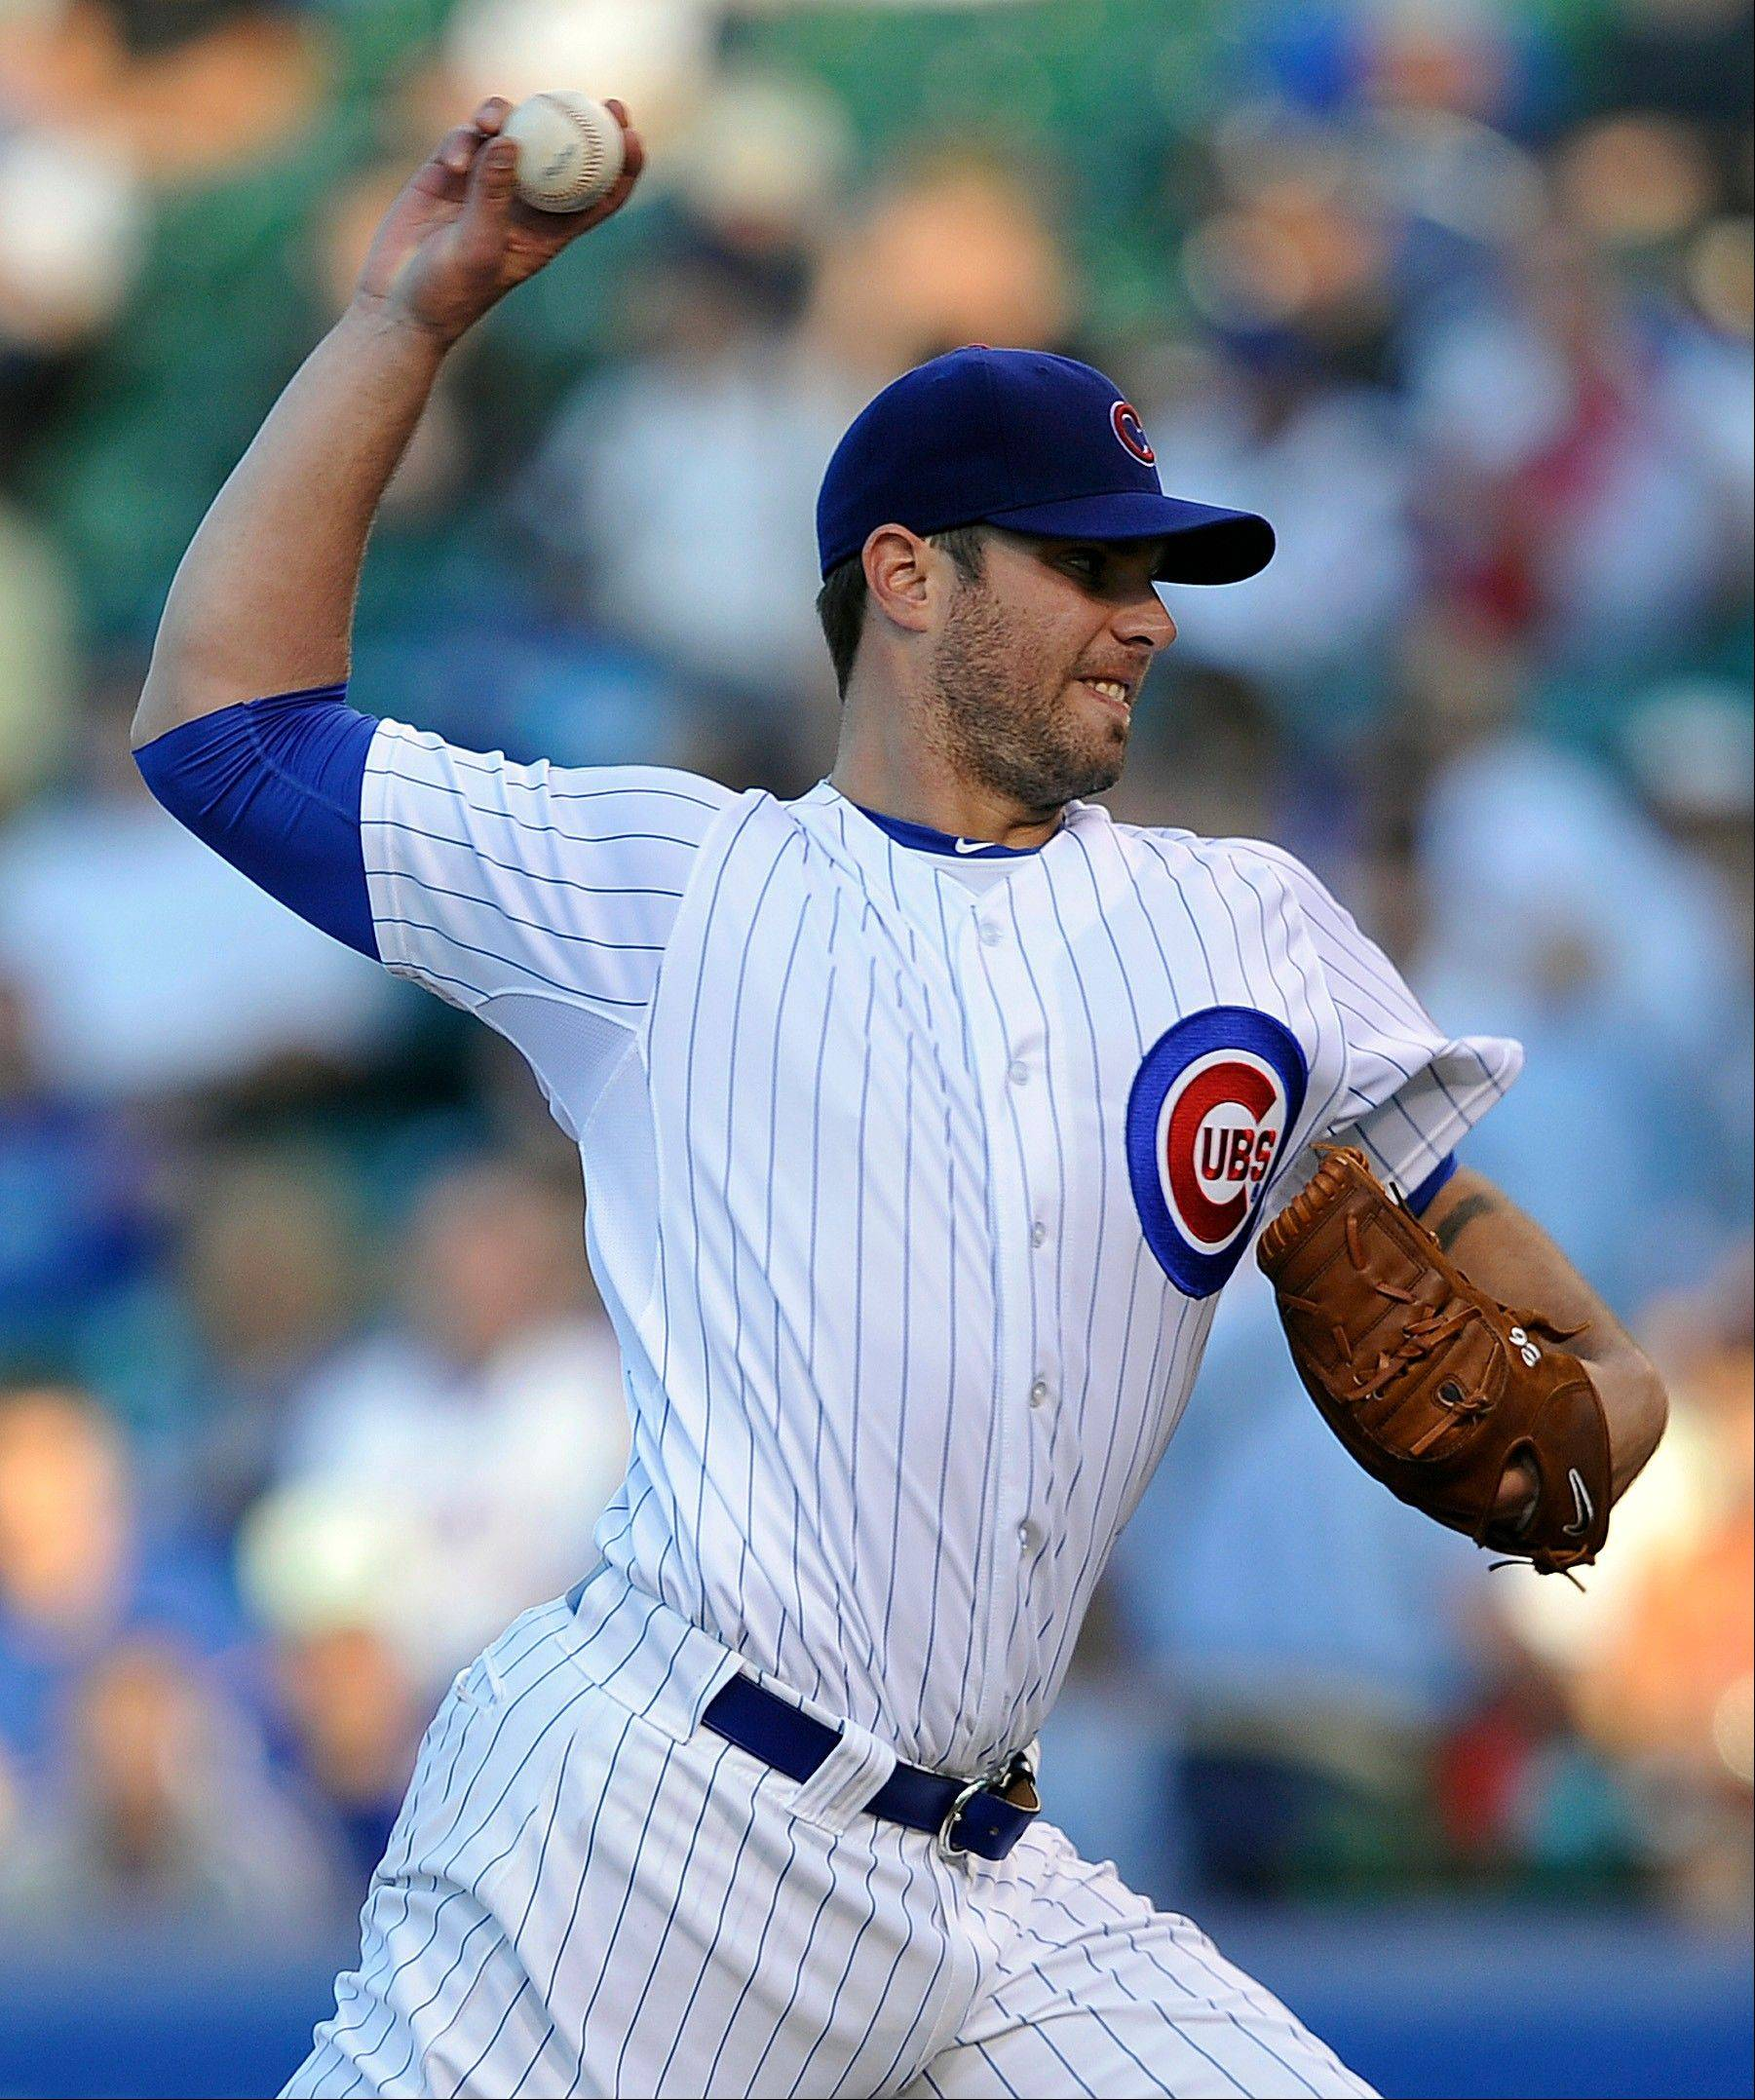 Randy Wells had an 0-2 record with a 7.04 ERA in 4 starts with the Cubs this season.